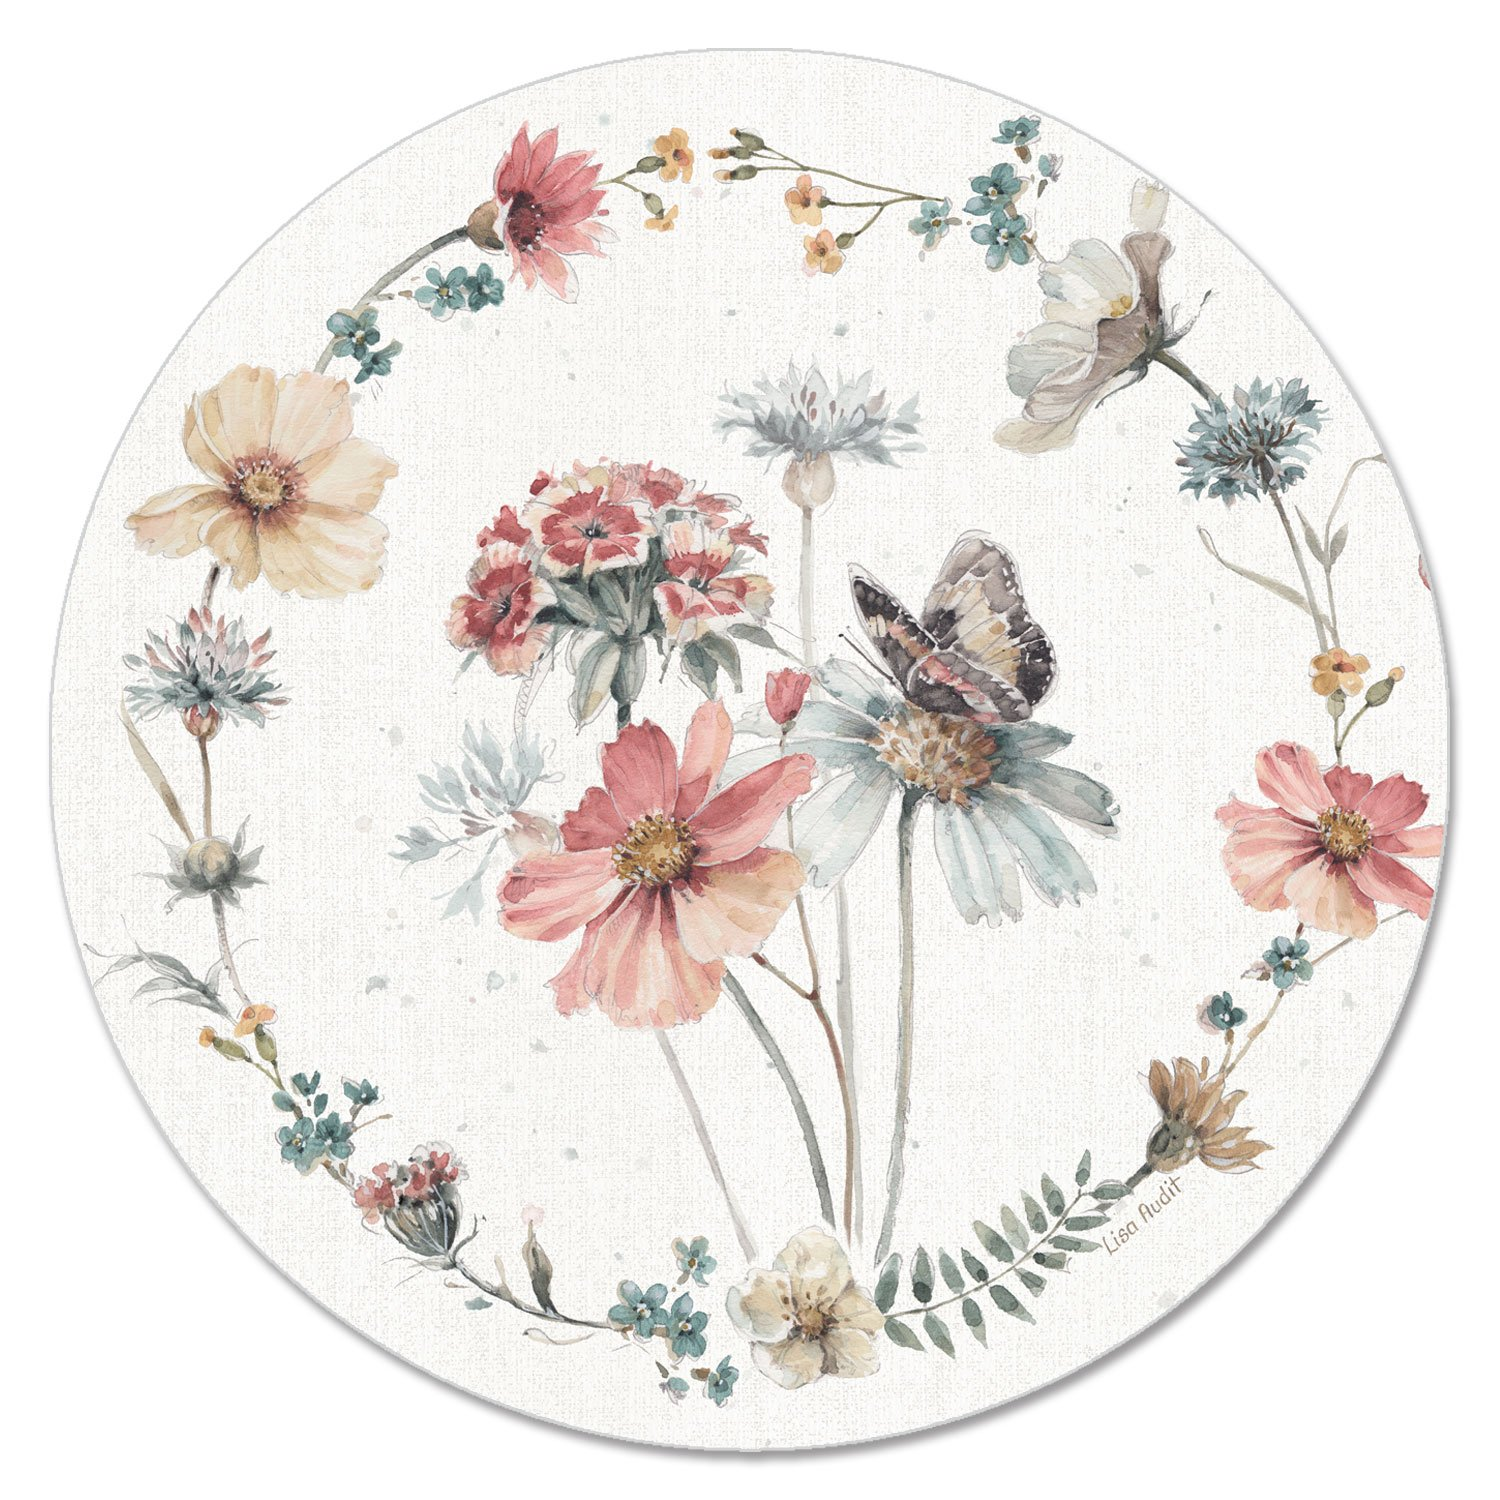 CounterArt 13-Inch Glass Lazy Susan Turntable Serving Plate, Country Floral